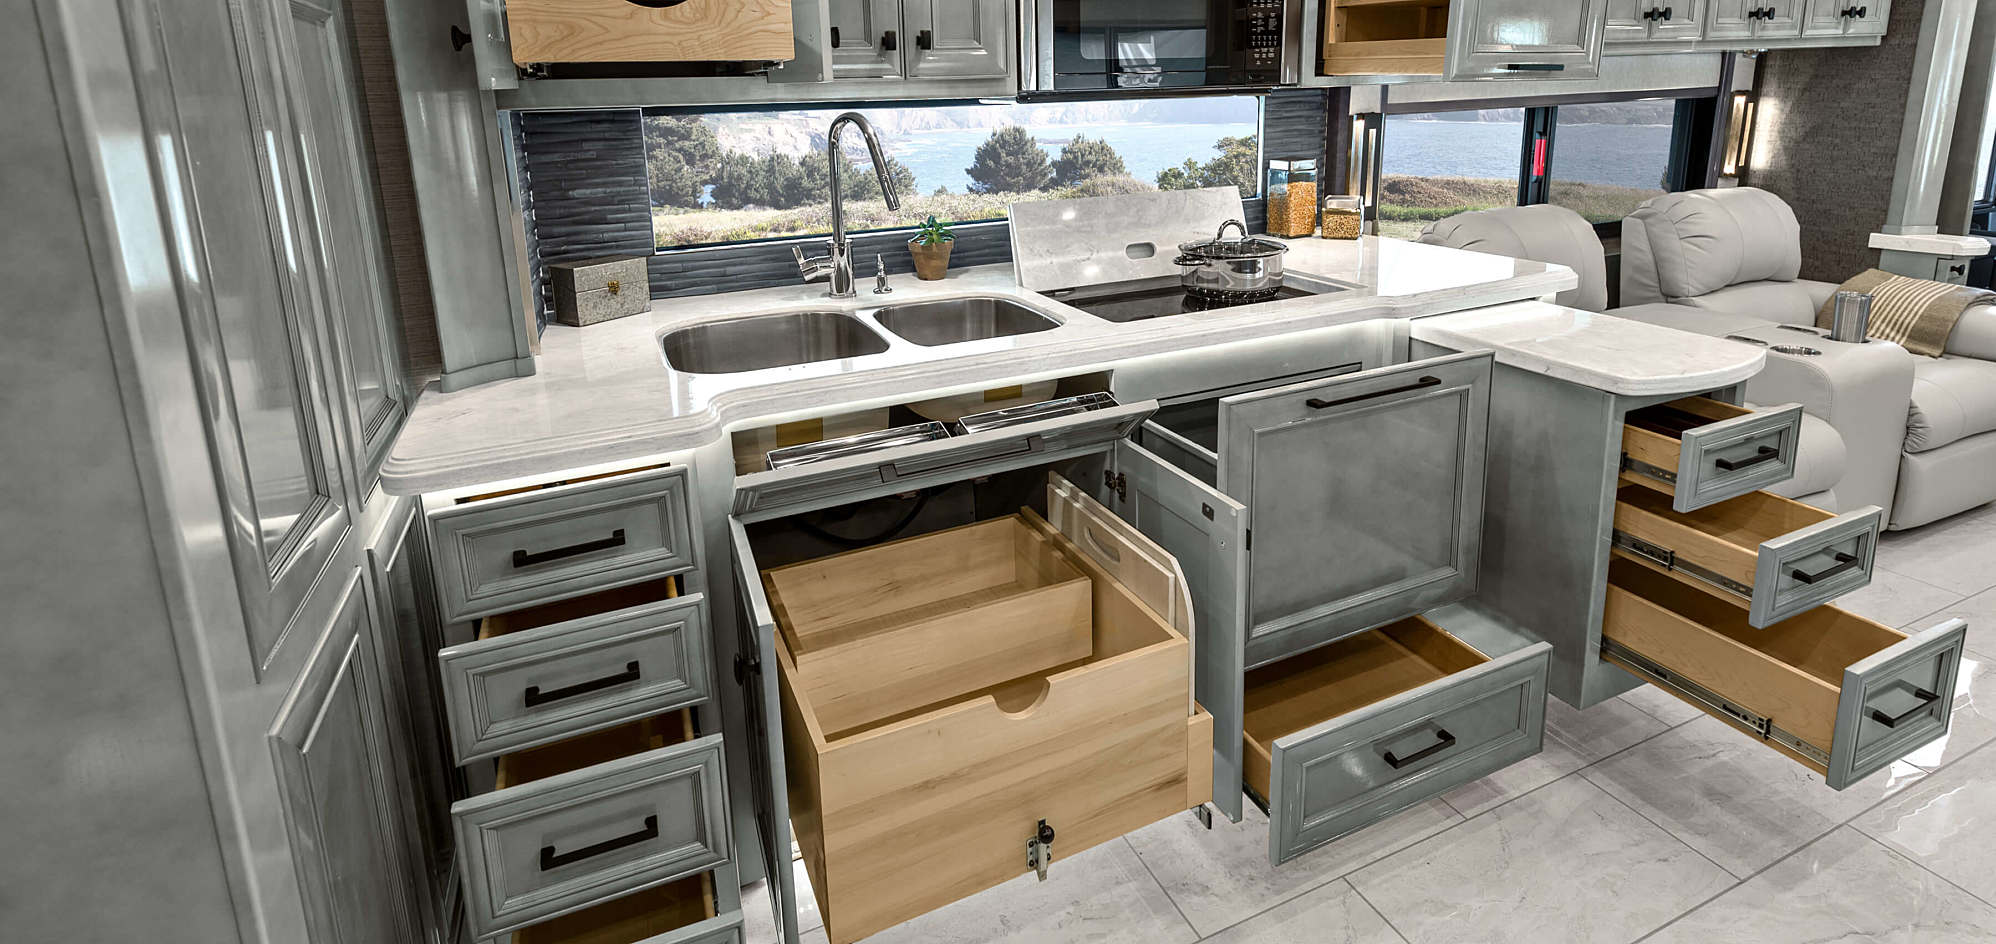 Tiffin Allegro Kitchen RV Storage Tips